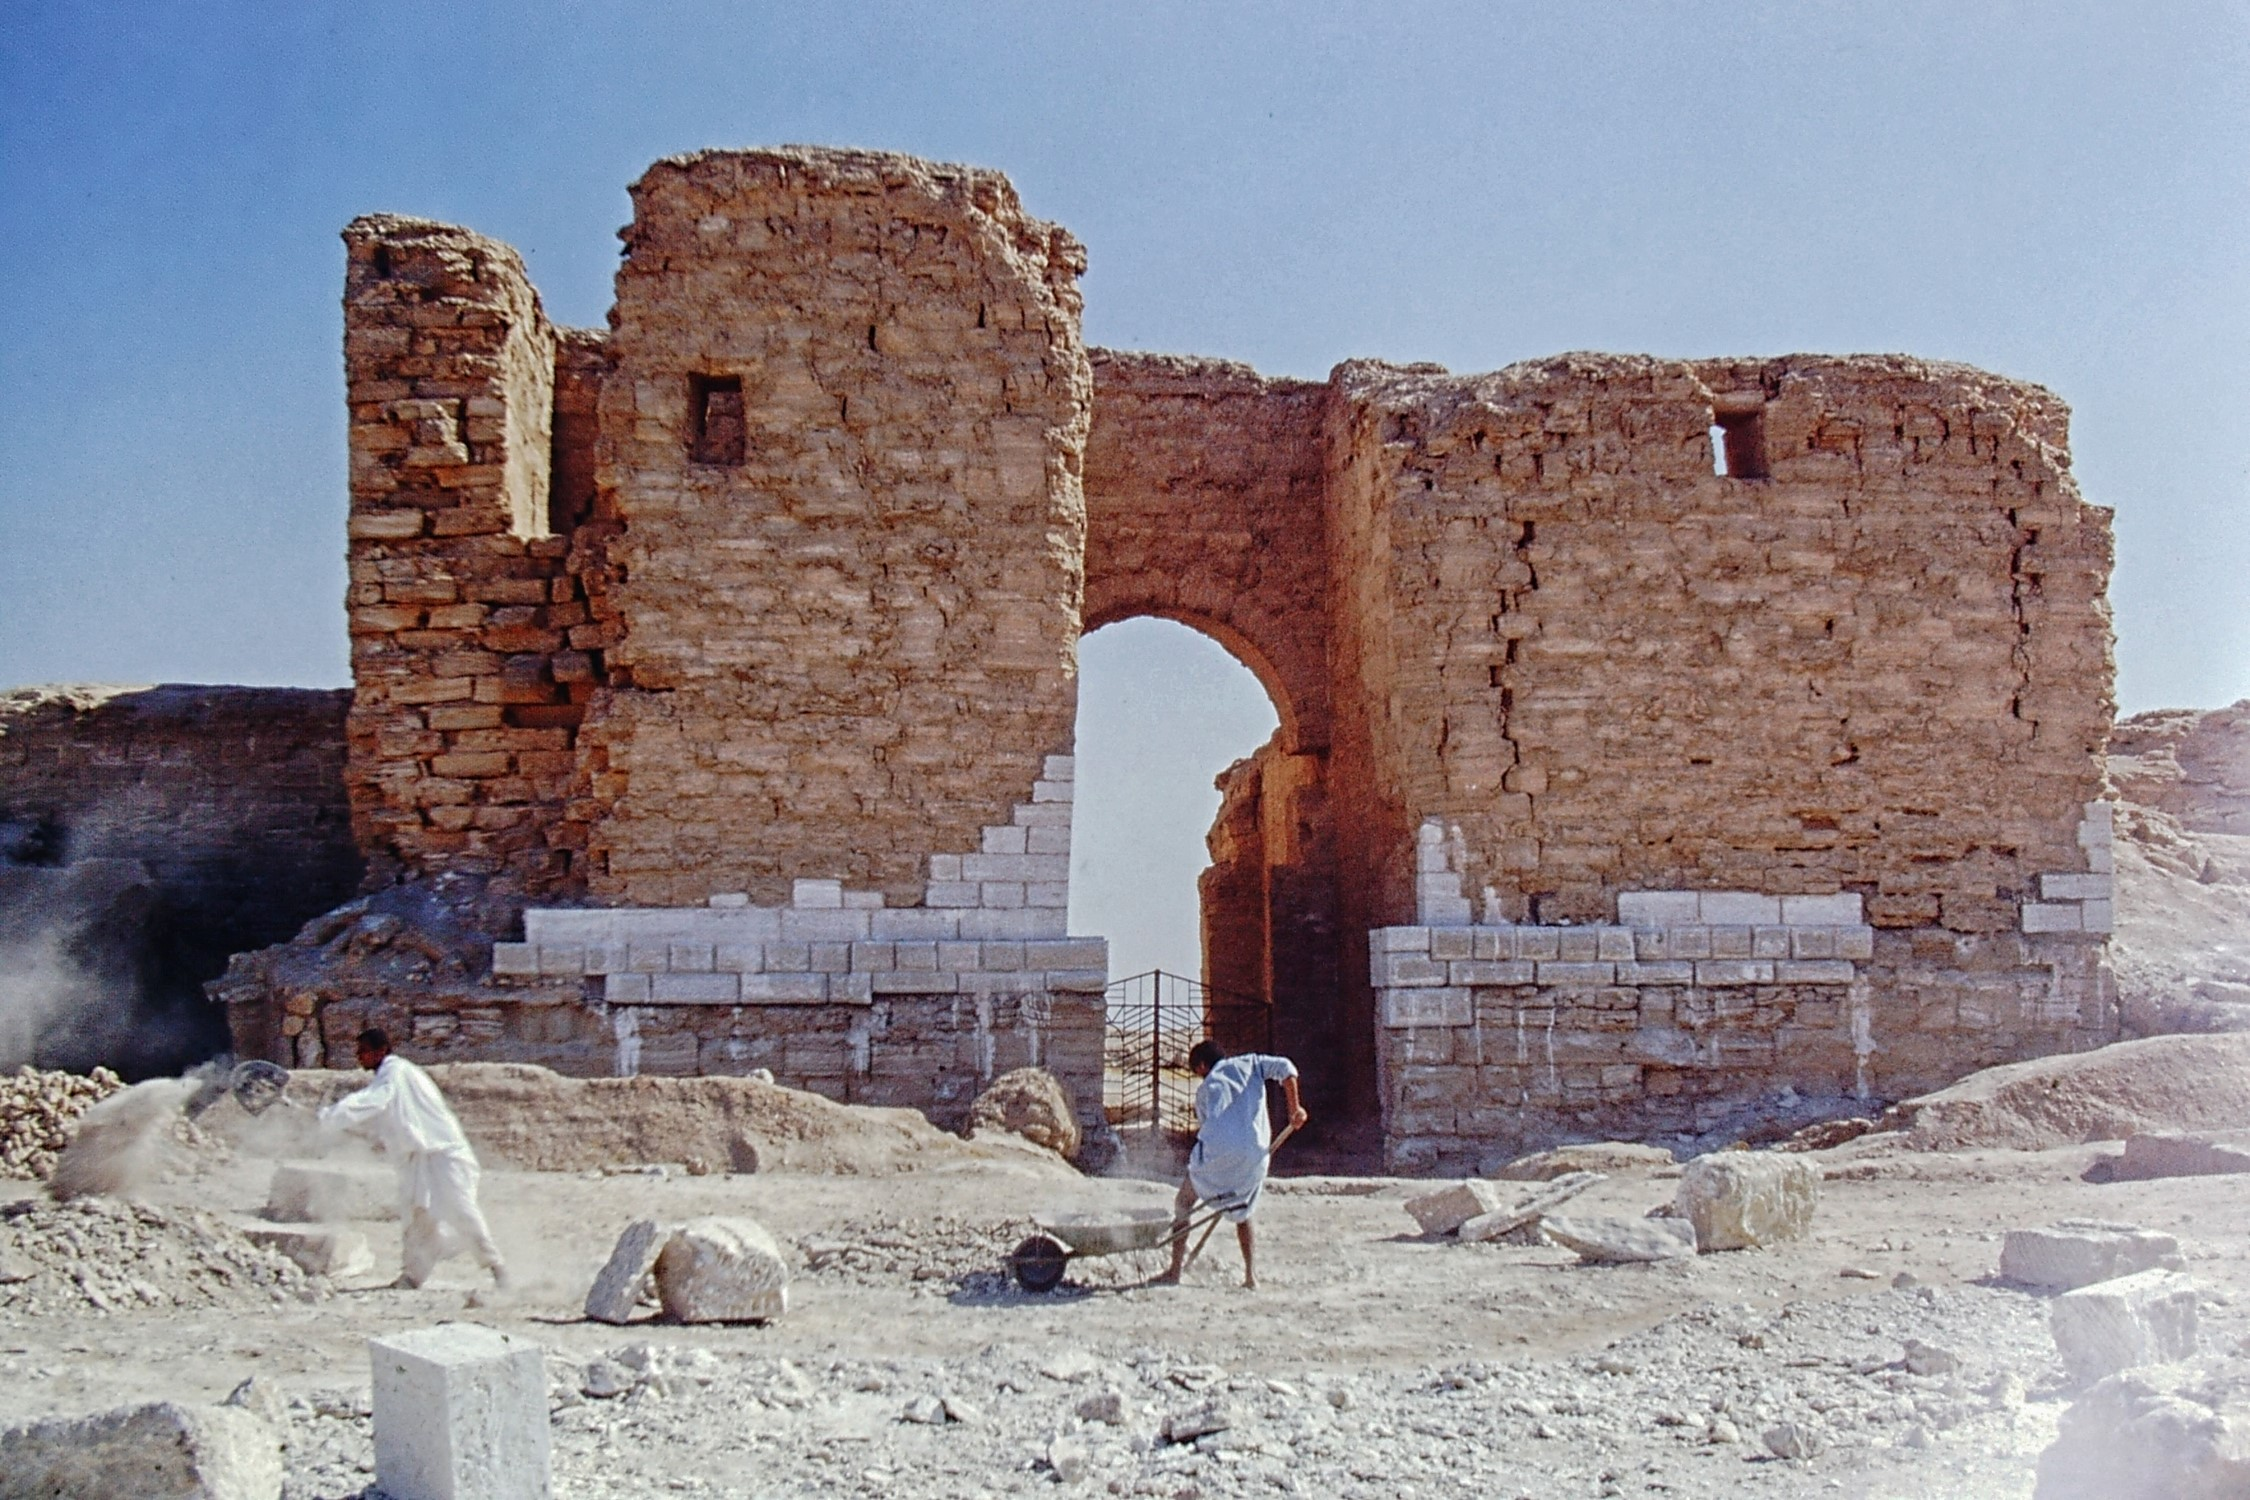 Workmen in front of ruined arch